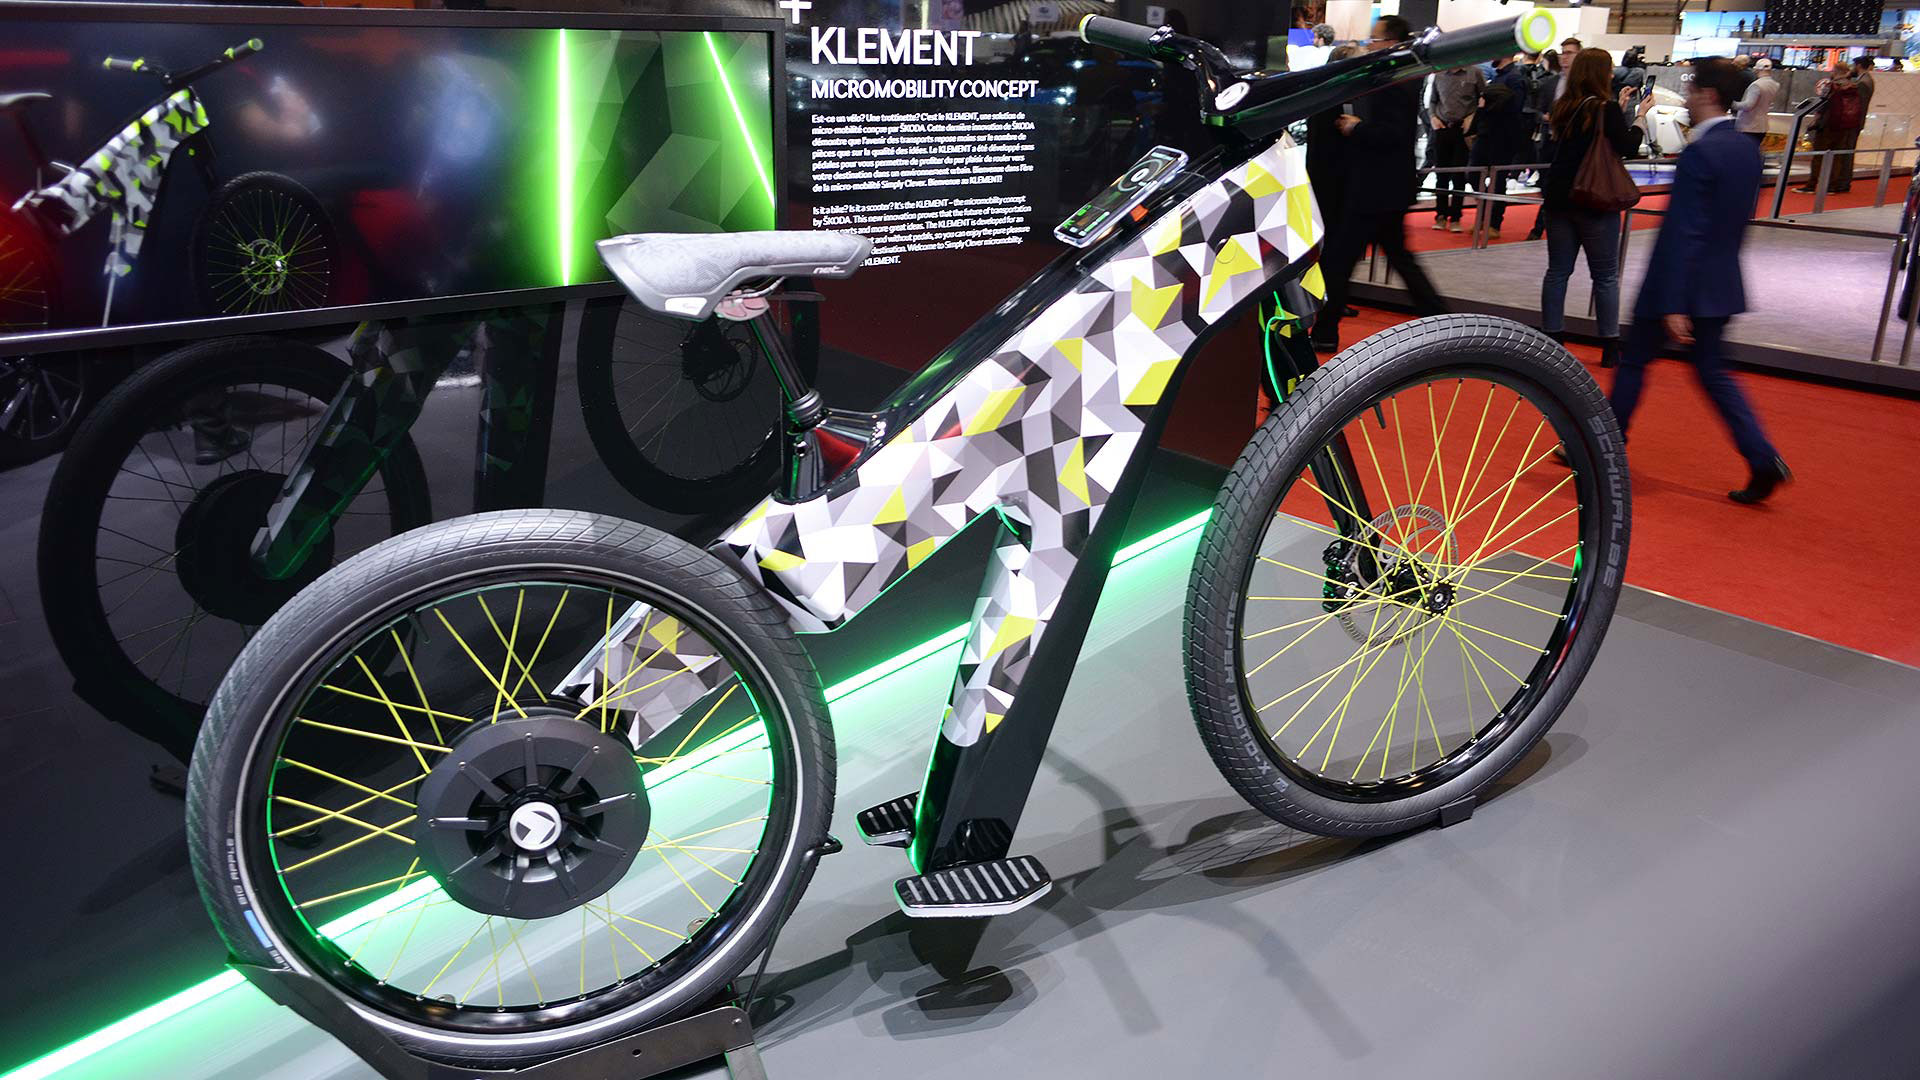 Skoda Klement electric bike